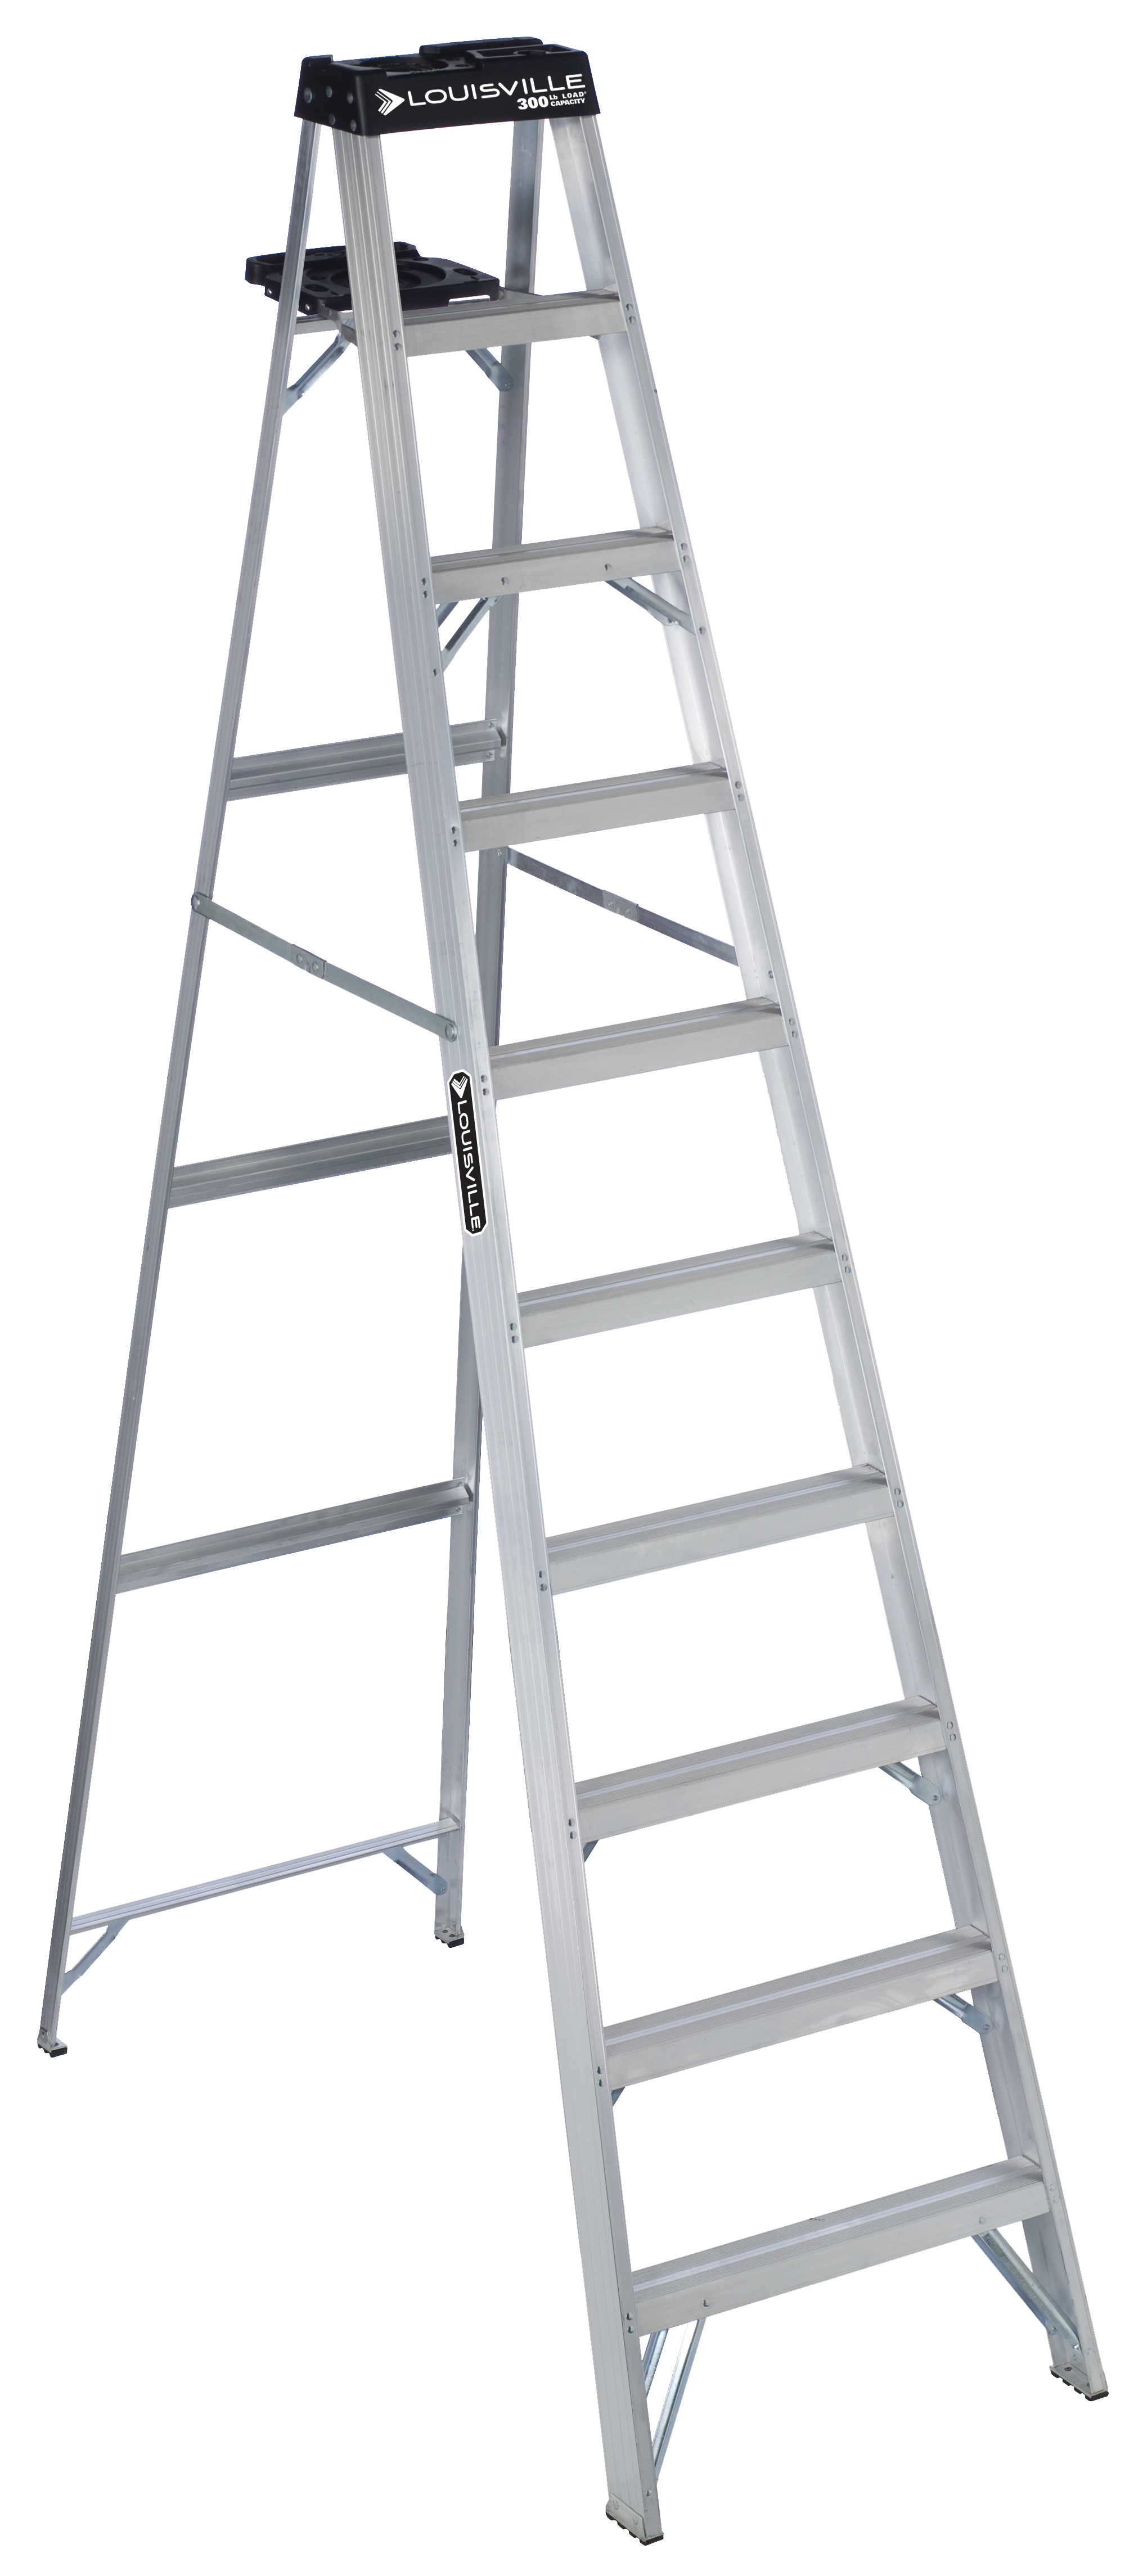 Louisville Ladder AS3010 10 ft. Aluminum Step Ladder, Type IA, 300 lbs. Load Capacity